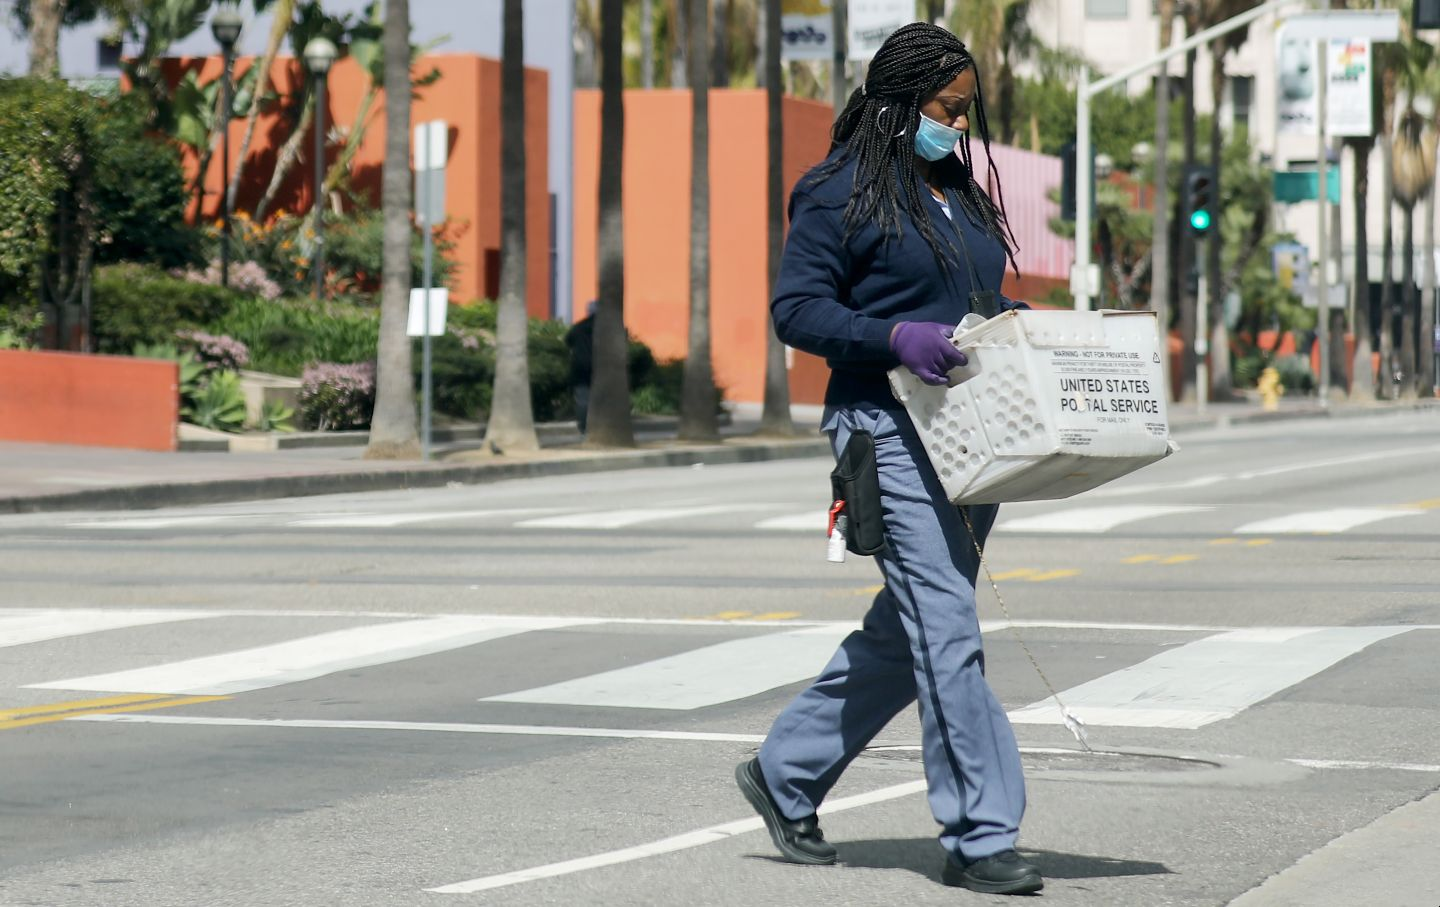 USPS worker with gloves and mask crosses street amid coronavirus outbreak in LA